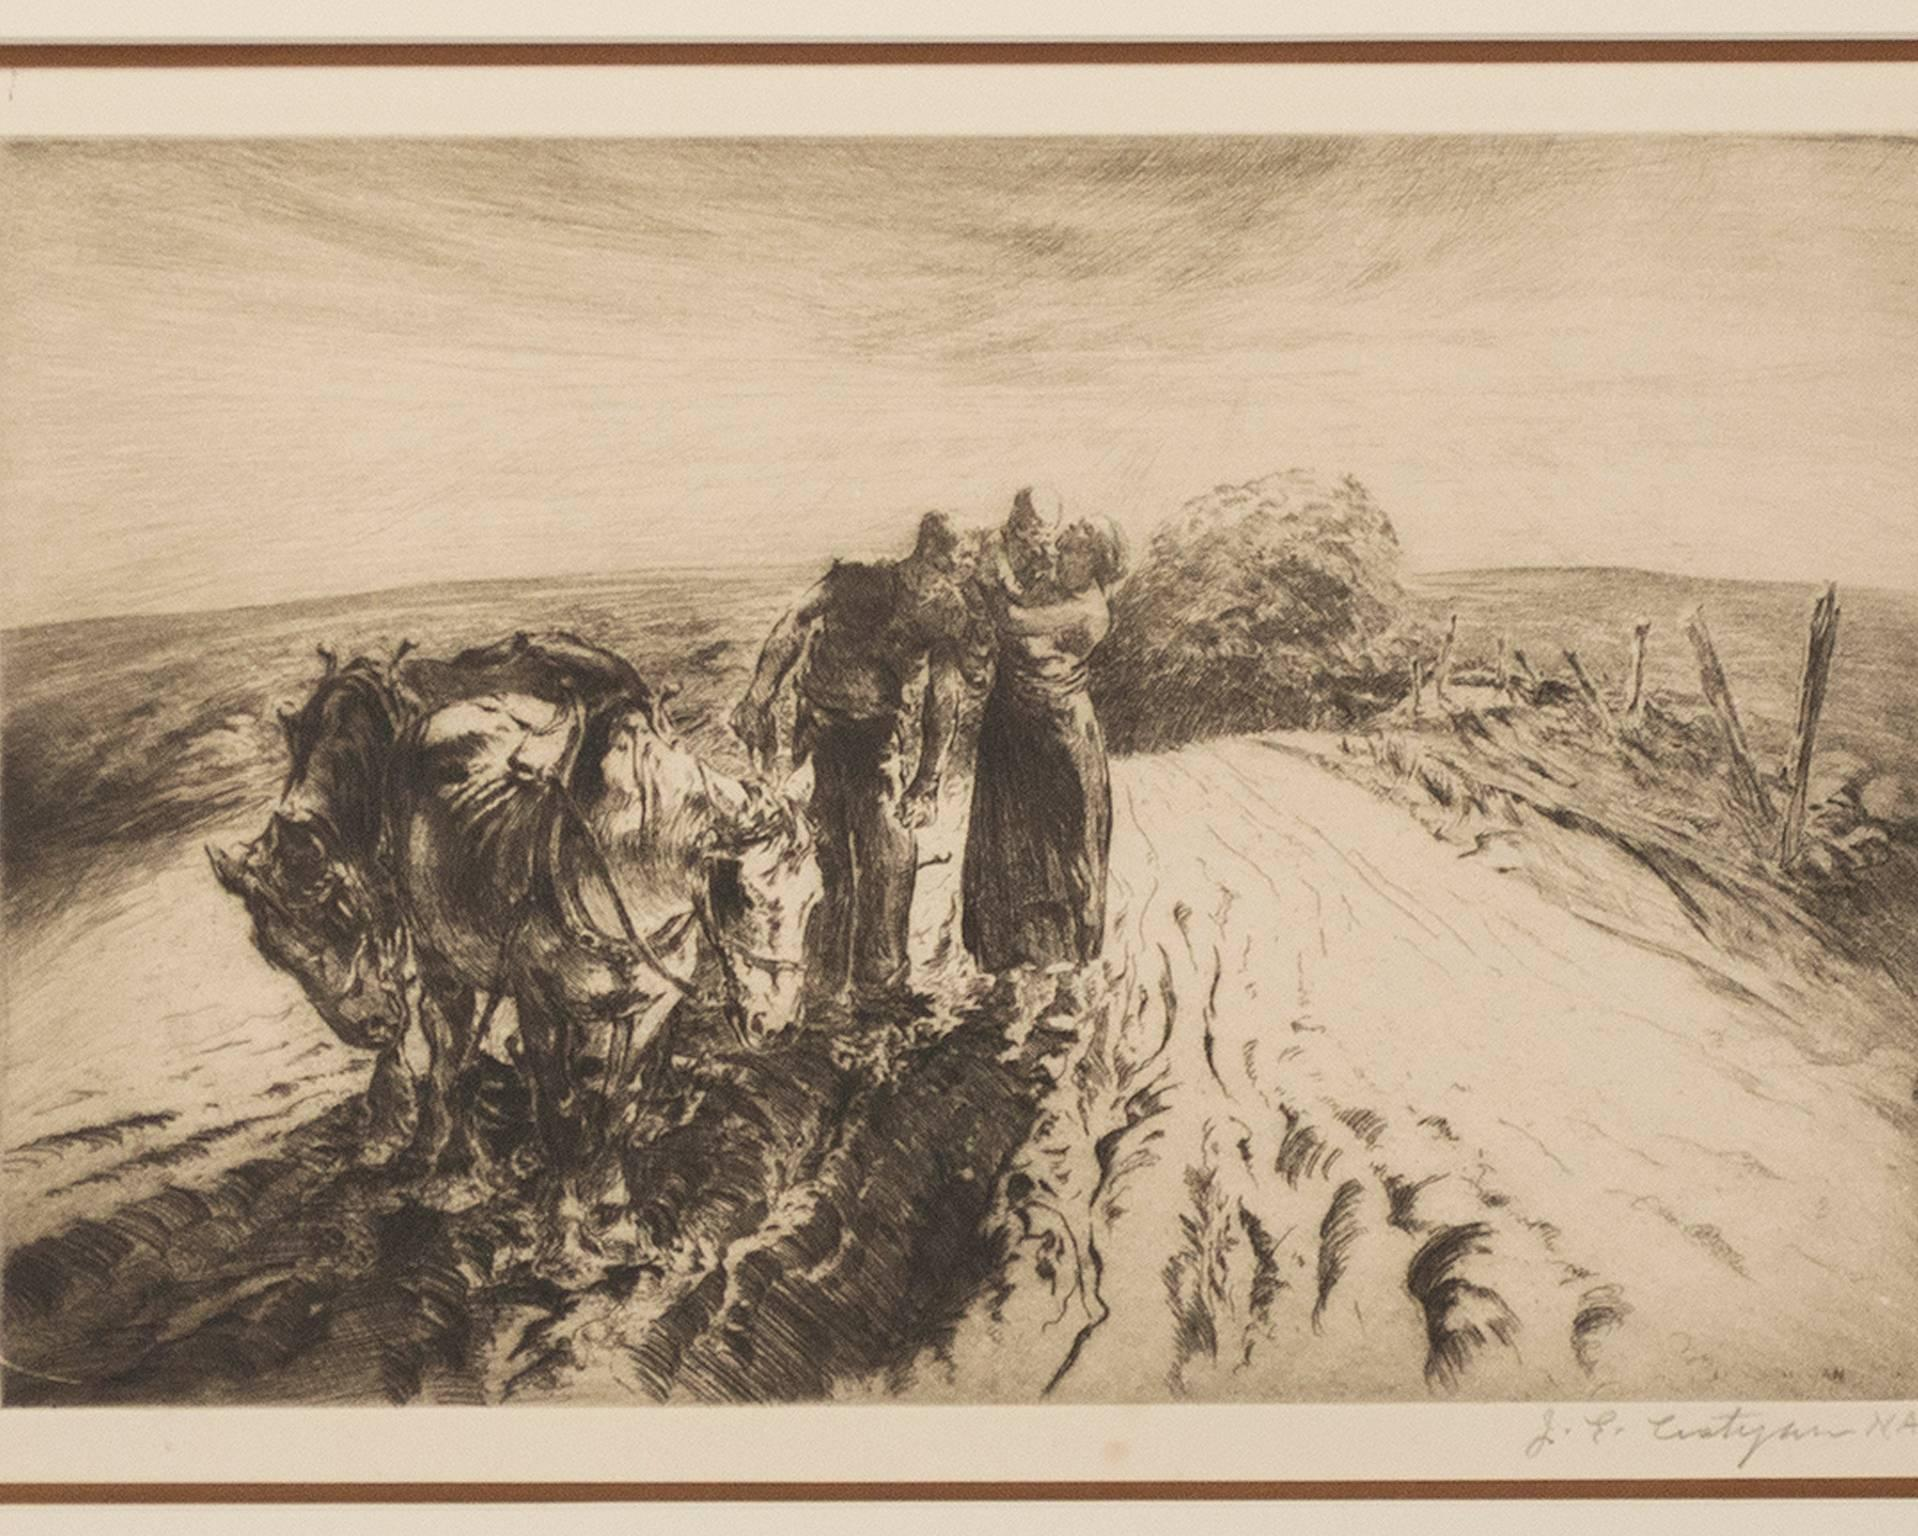 """""""When Day is Done,"""" an Original Etching signed by John Edward Costigan"""